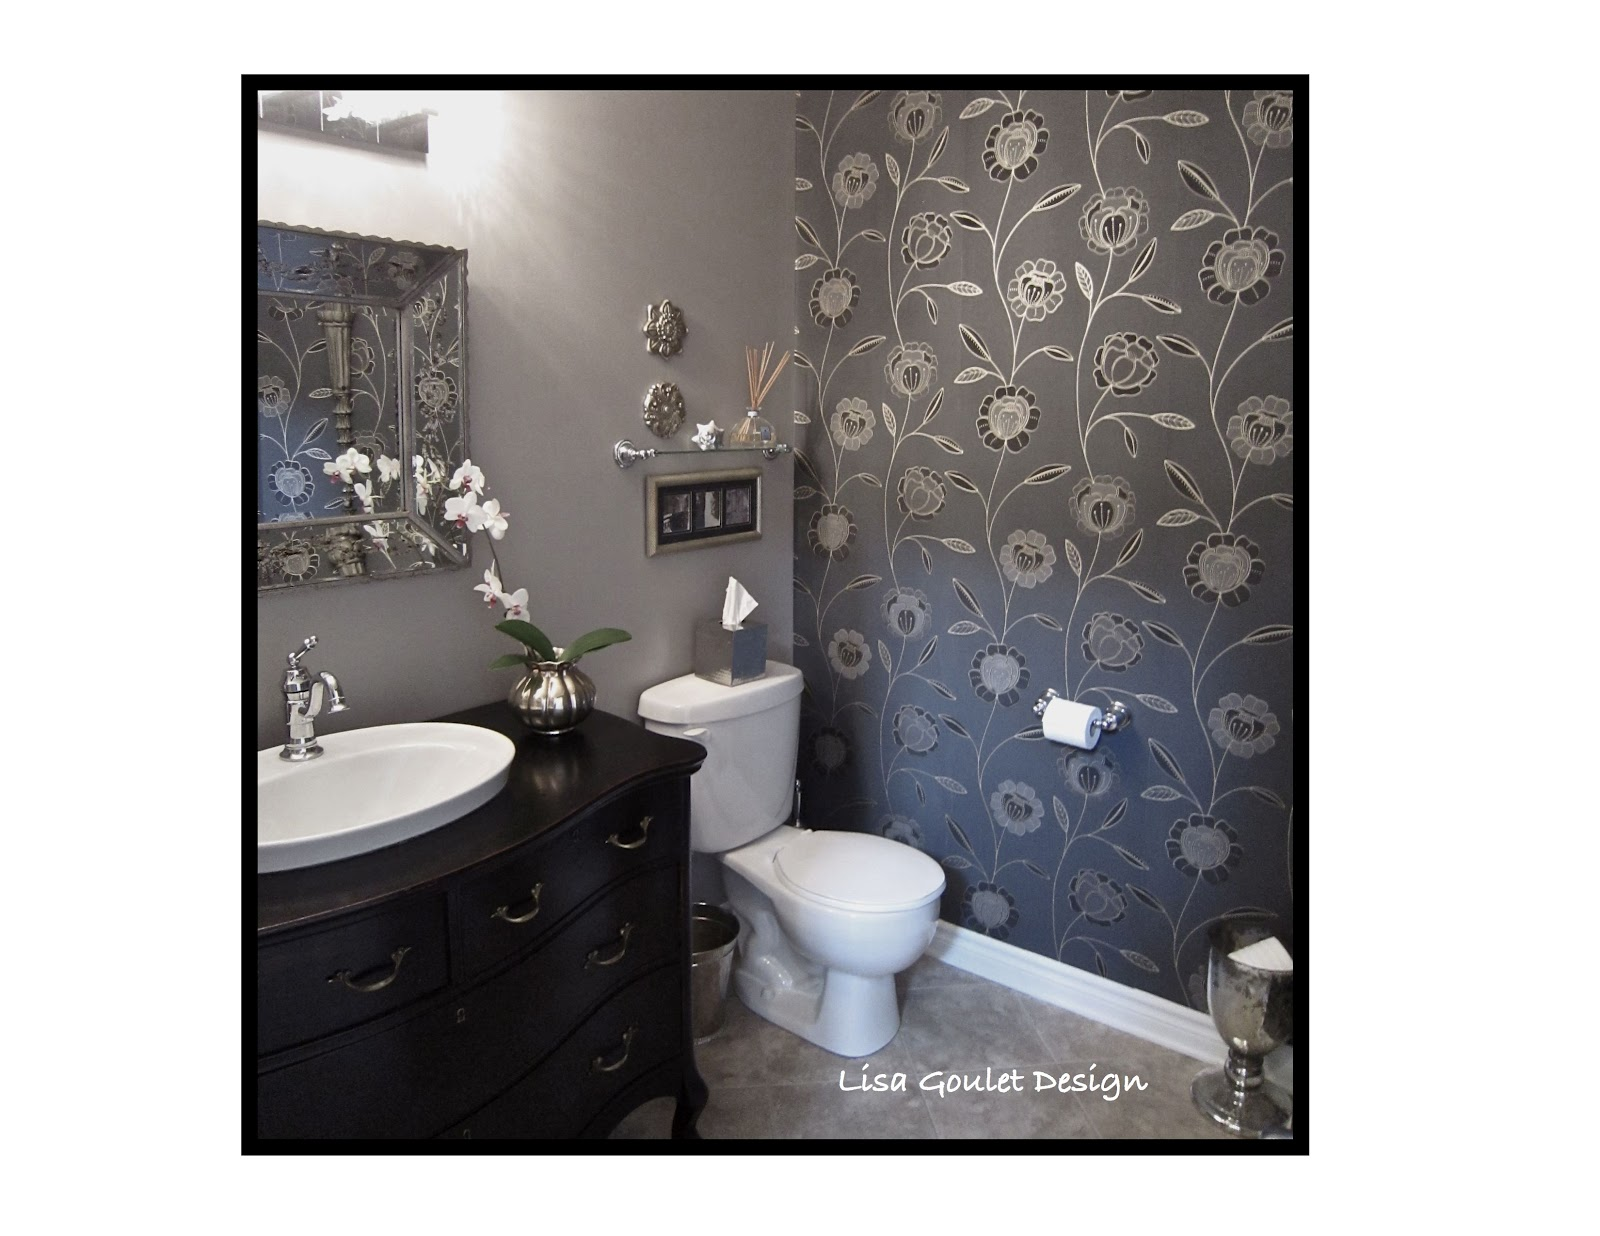 Toilet Design Ideas bathroom ideas restroomdesigns toilet designs toilet design ideas Toilet Design Ideas